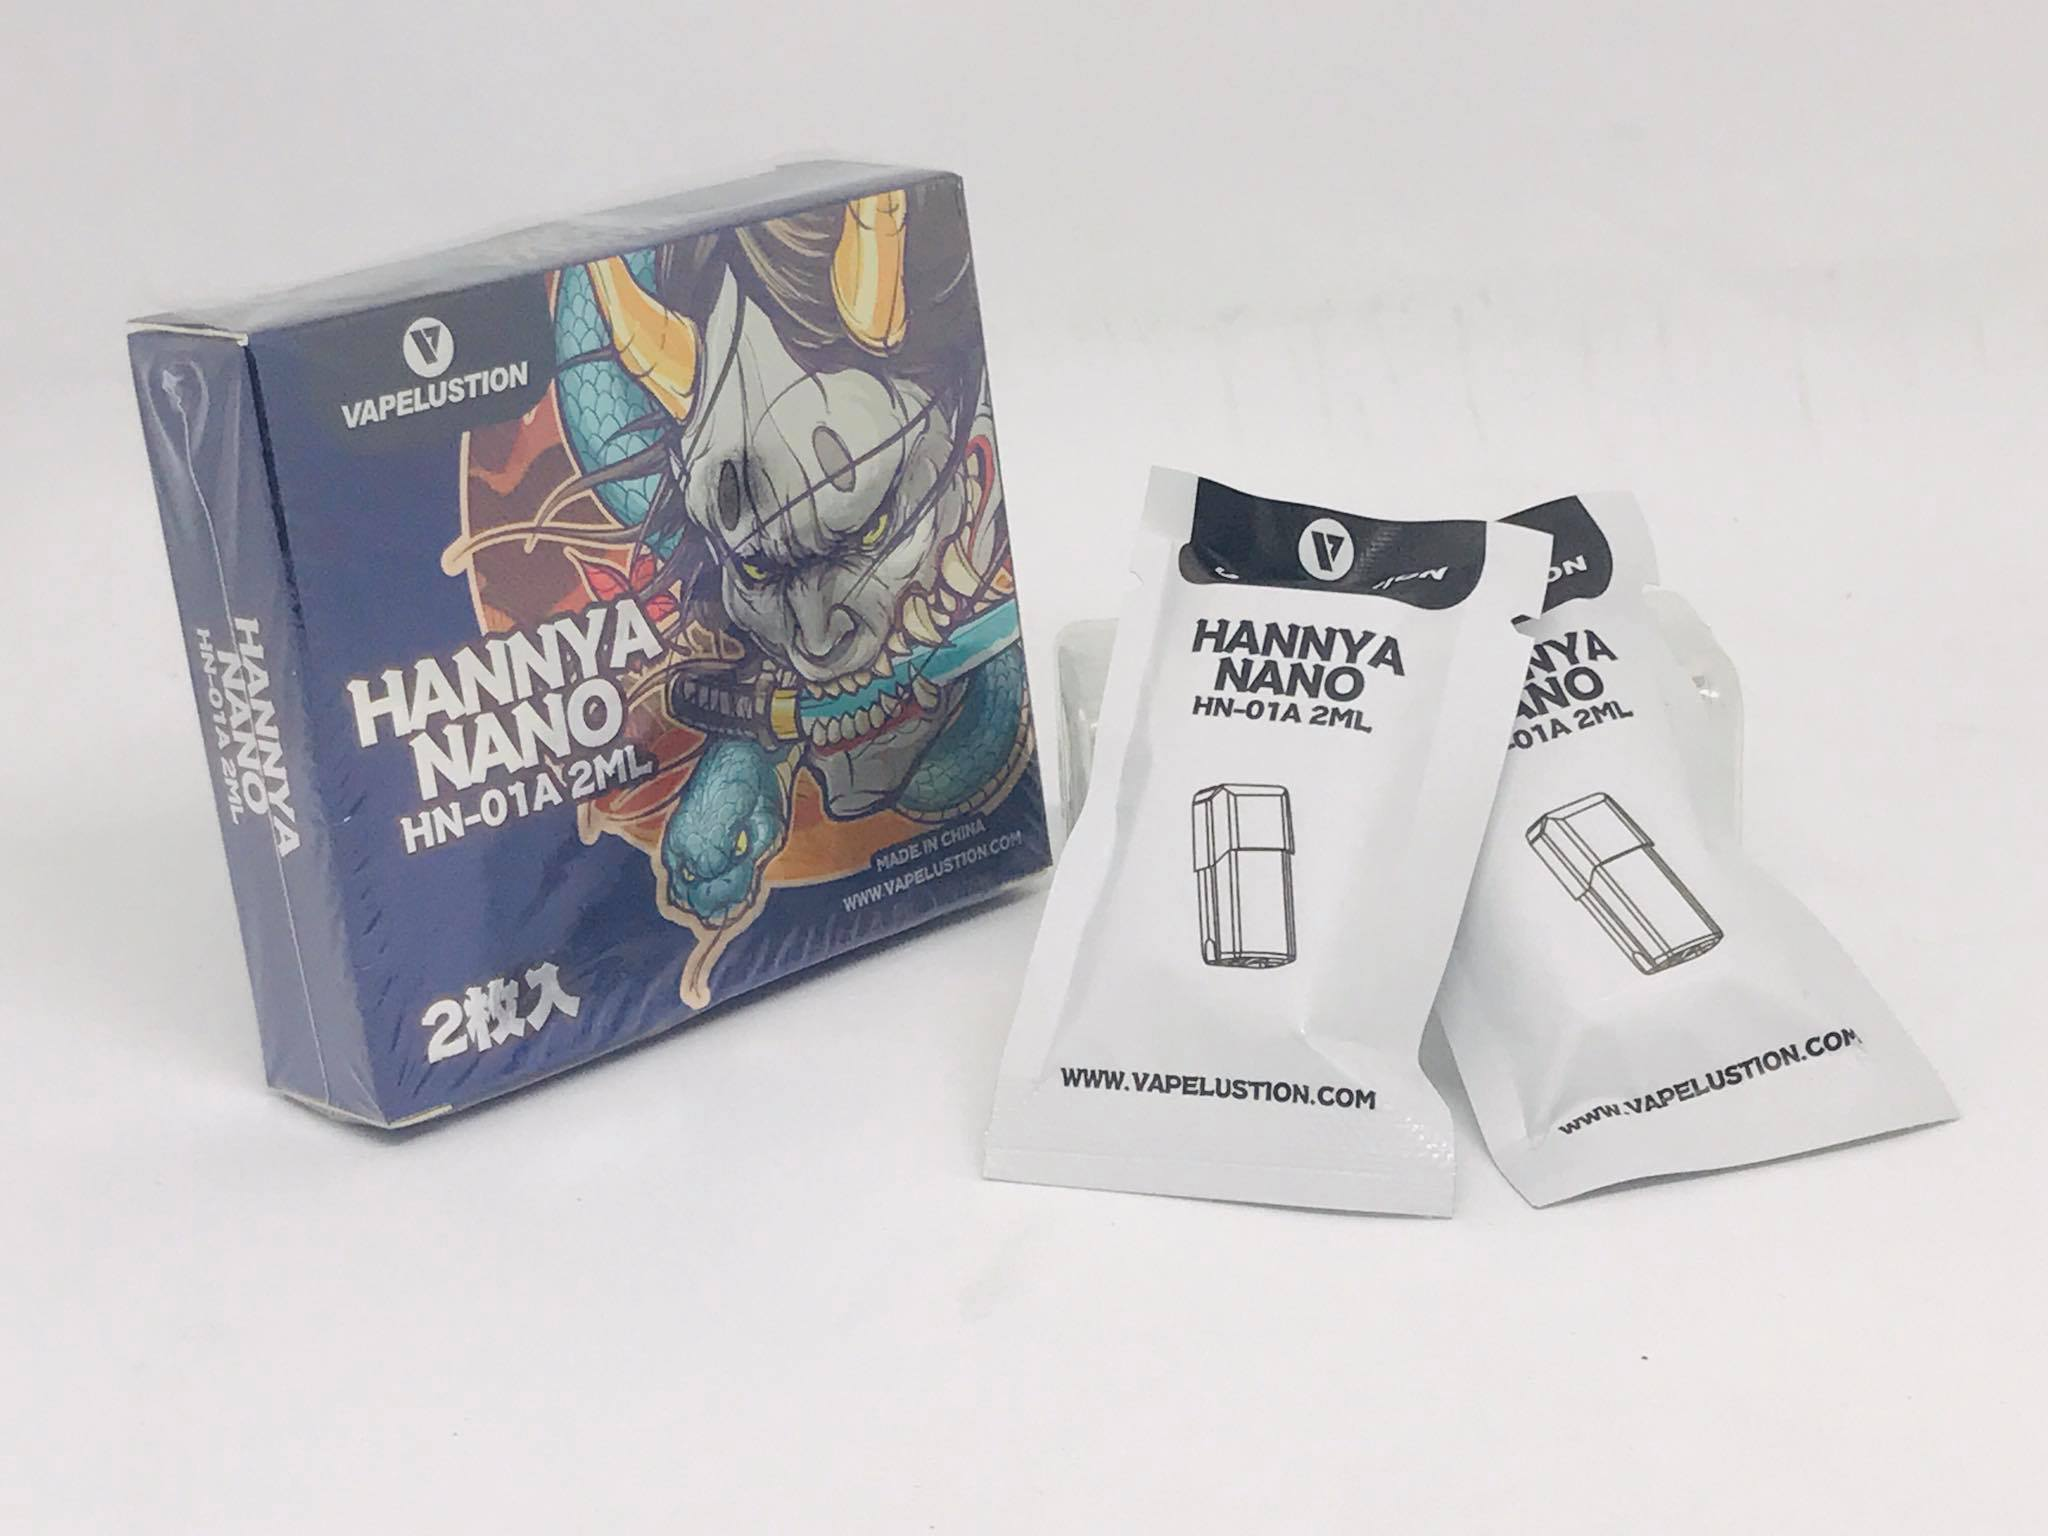 Pod Hanny nano Podsystem ( Black or White )